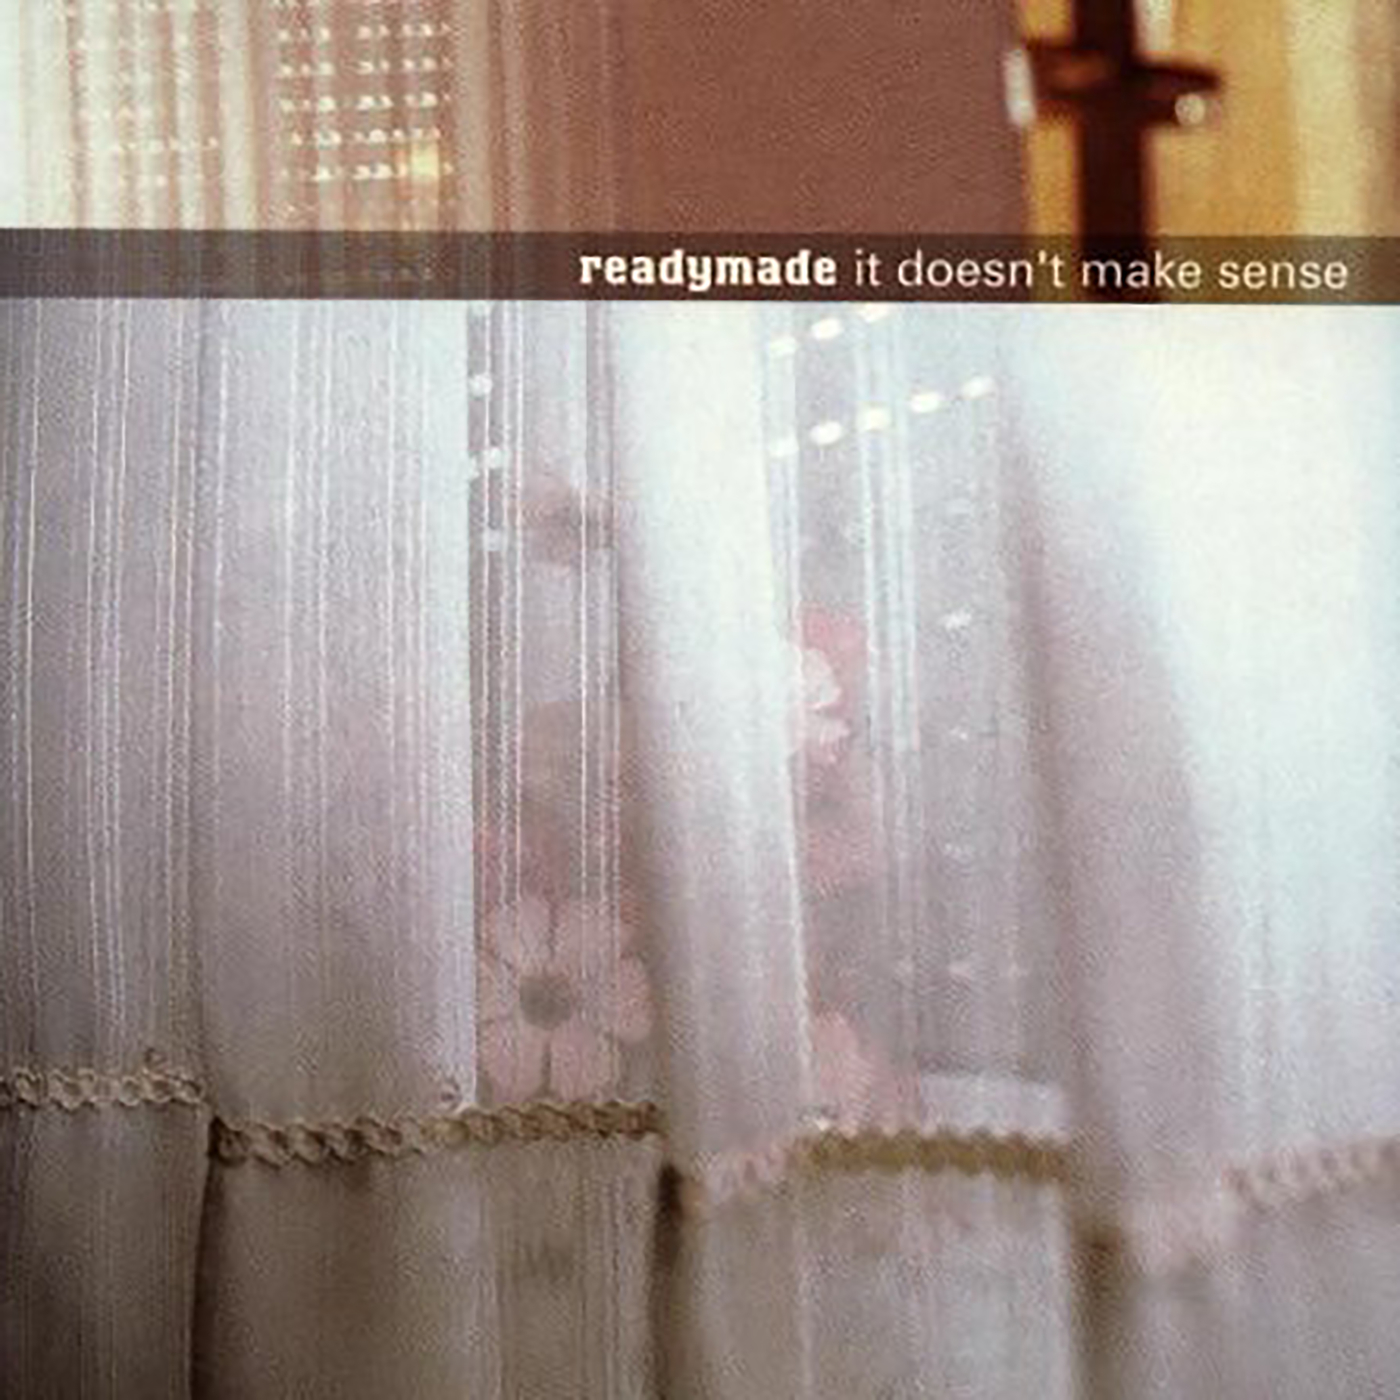 It Doesn't Make Sense - Readymade